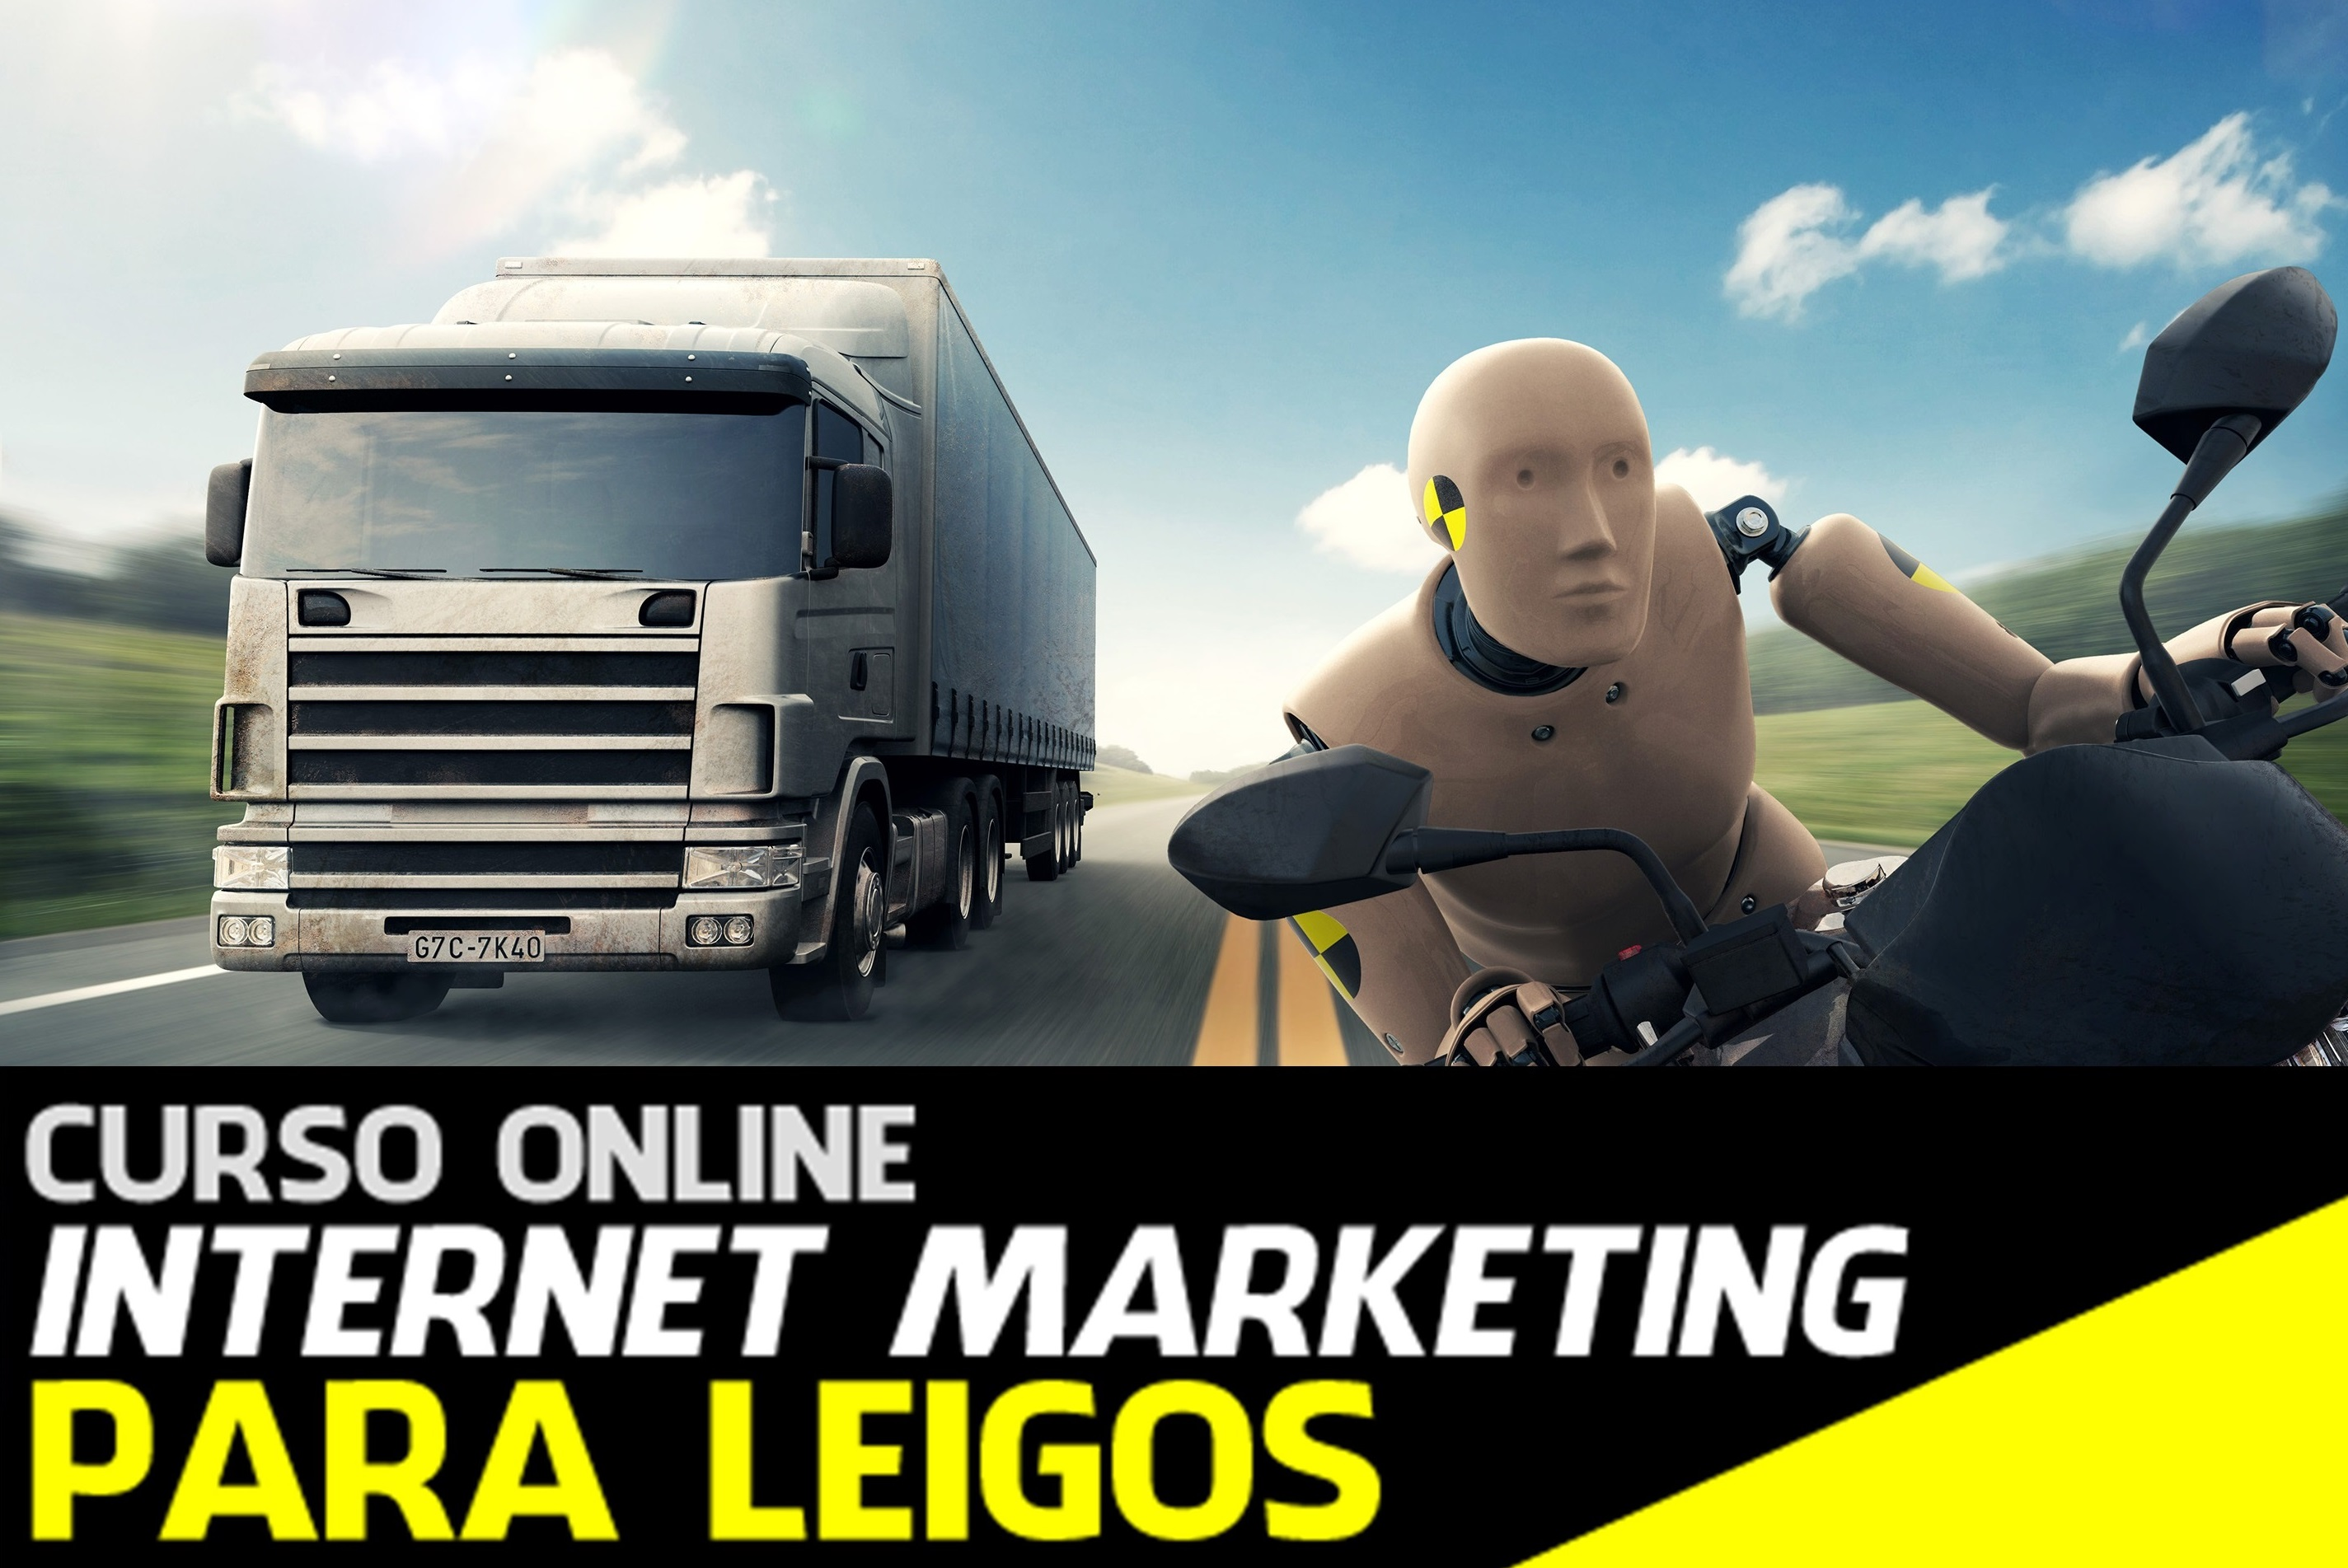 curso-internet-marketing-para-leigos